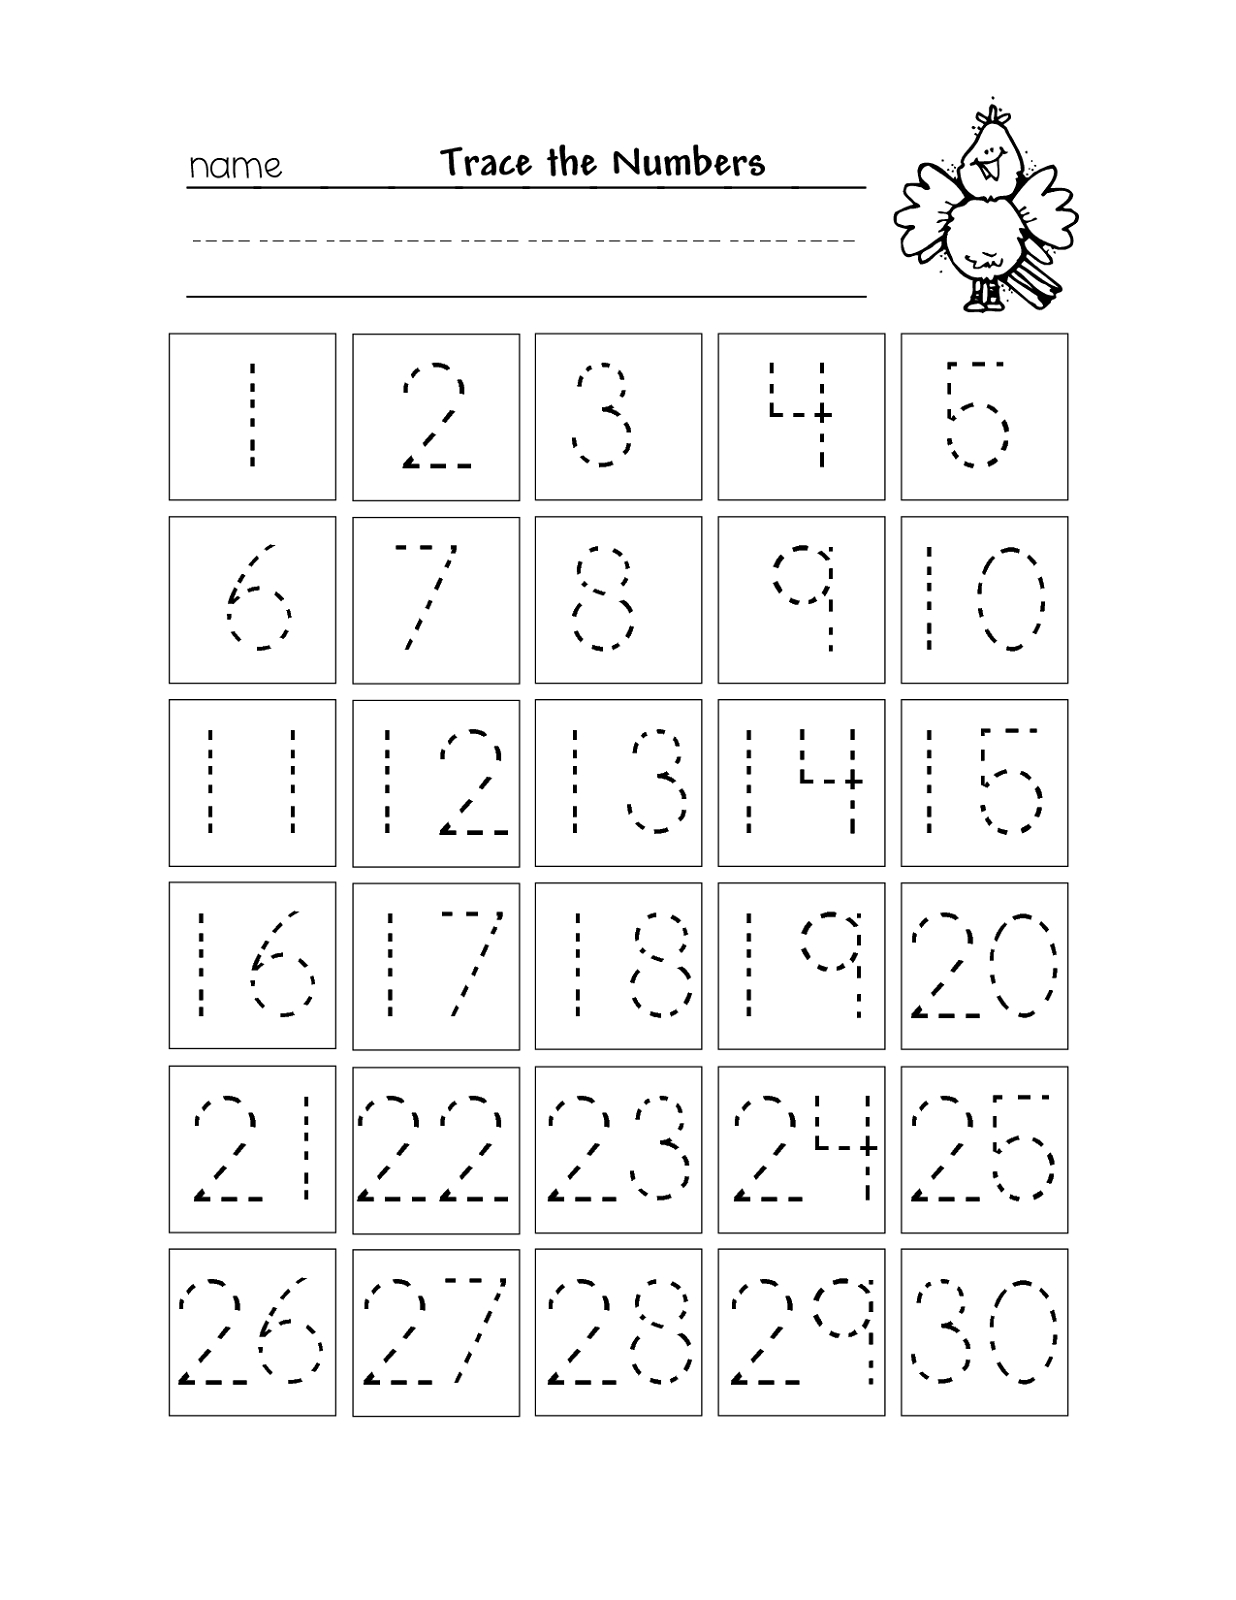 Free Printable Number Chart 1-30 | Kinder | Kindergarten Worksheets | Printable Number Tracing Worksheets